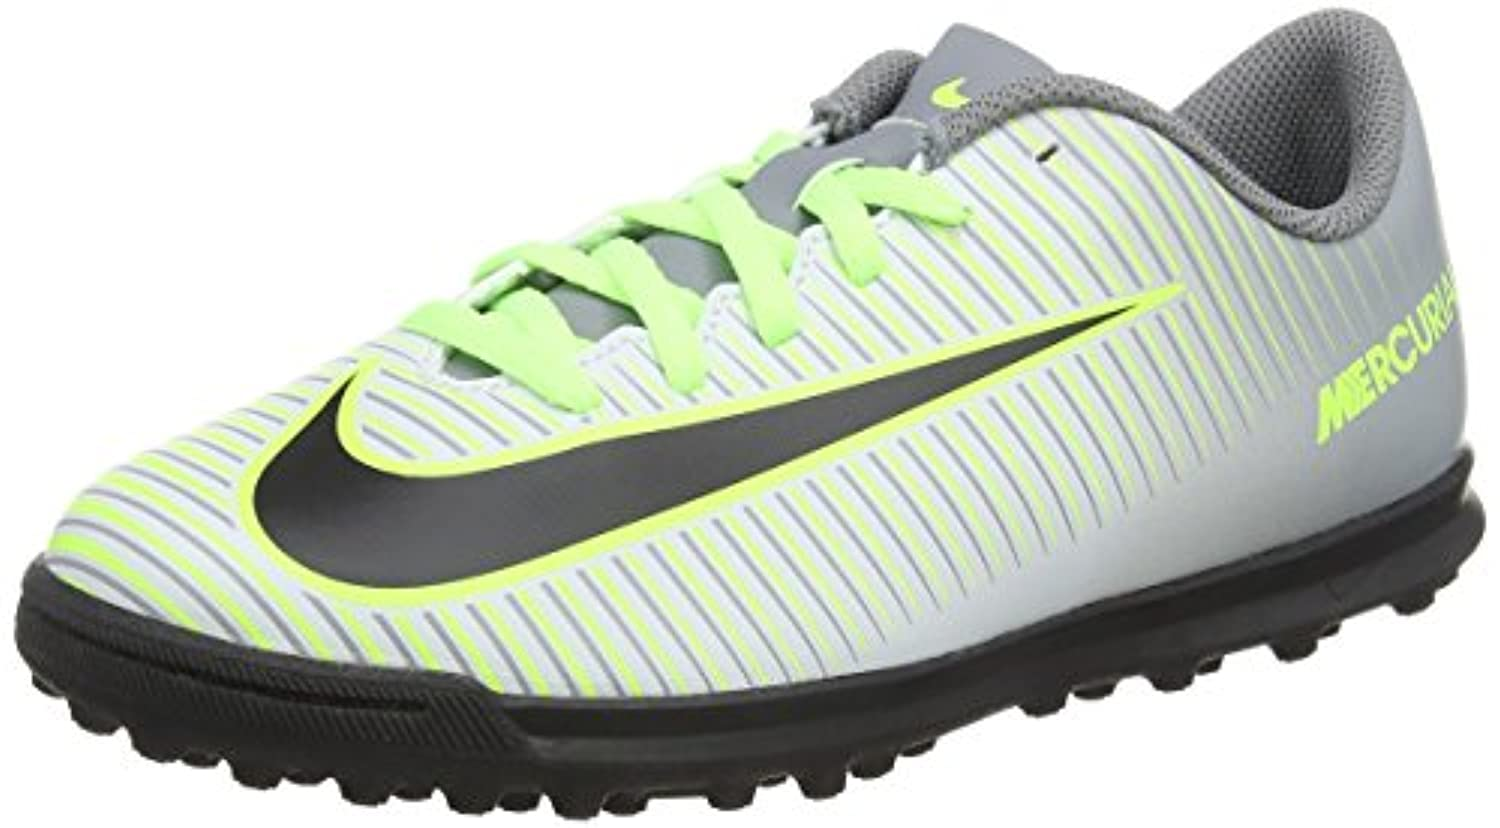 Nike Mercurial Vortex Iii Tf, Unisex Kids' Football Training, Grey (pure Platinum/black/ghost Green/clear Jade), 1 UK (33 EU)